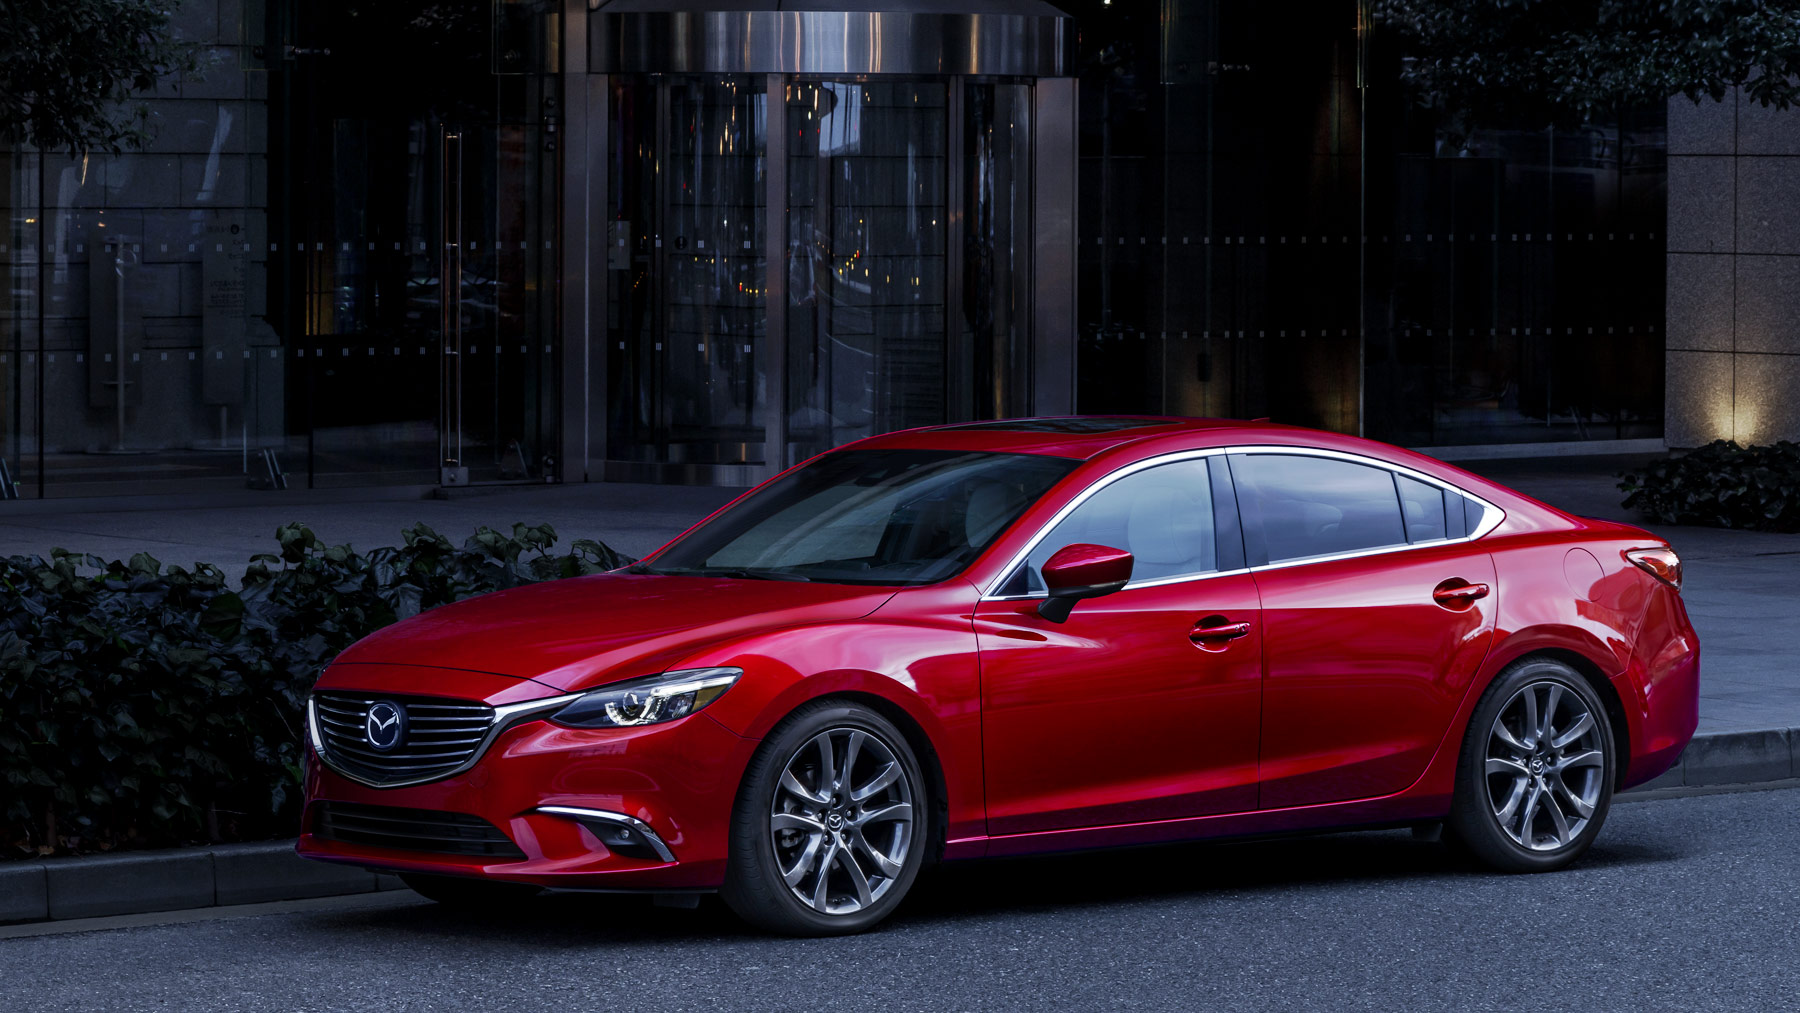 2017-m6g-soulred-exterior-mazda6-gallery-09